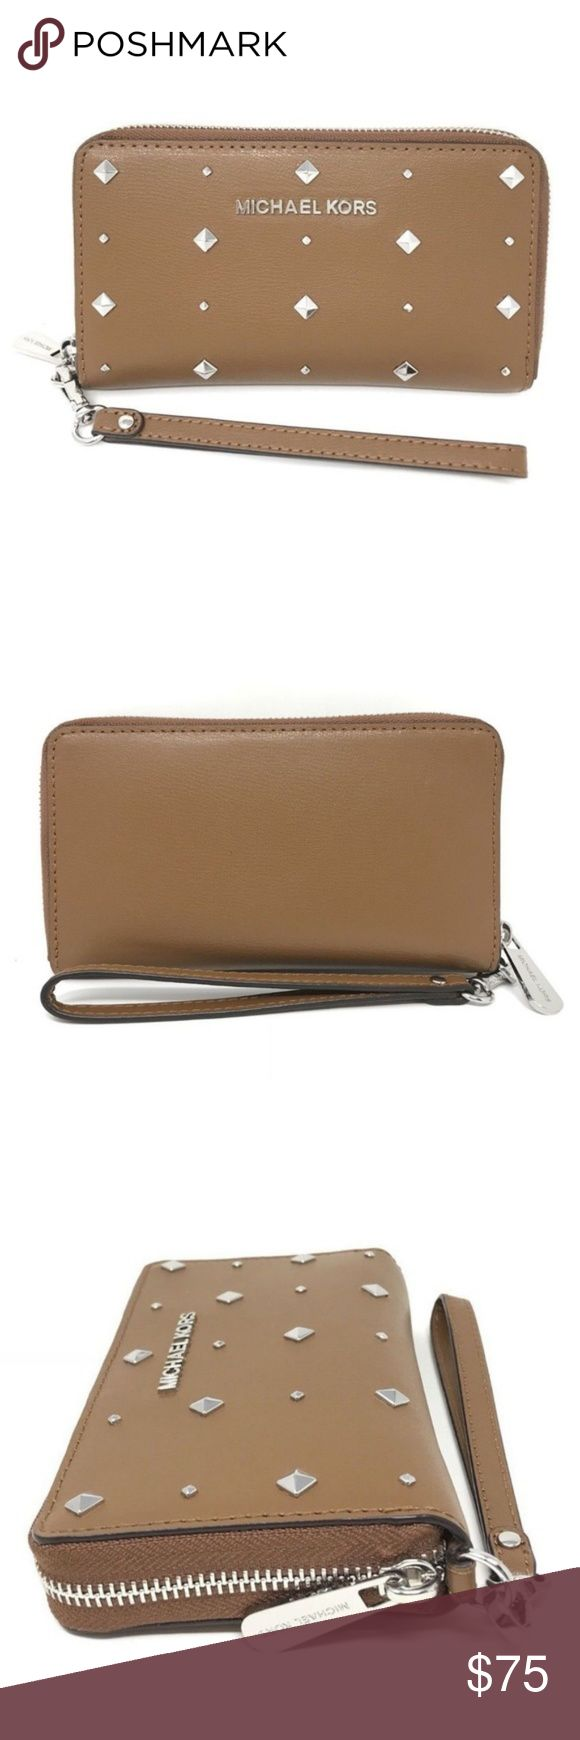 Michael Kors Leather Stud Het Set Travel Wallet Michael Kors Leather Stud Het Set Travel Flat MF Luggage Phone Case Wallet  item# 273094457078  100% Authentic Michael Kors!  Buy with confidence!  MSRP: $168.00  Style: 35H7STVE3T  Features:  Brand: Michael Kors  Color: Luggage  Zip around wallet w/ wristlet  Soft Leather w/ Studs accent on front  Michael Kors Lettering Logo on front  Zippered closure  Silver tone hardware  Cell phone pocket  1 zippered/coin pocket  1 slip pocket, 7 card…